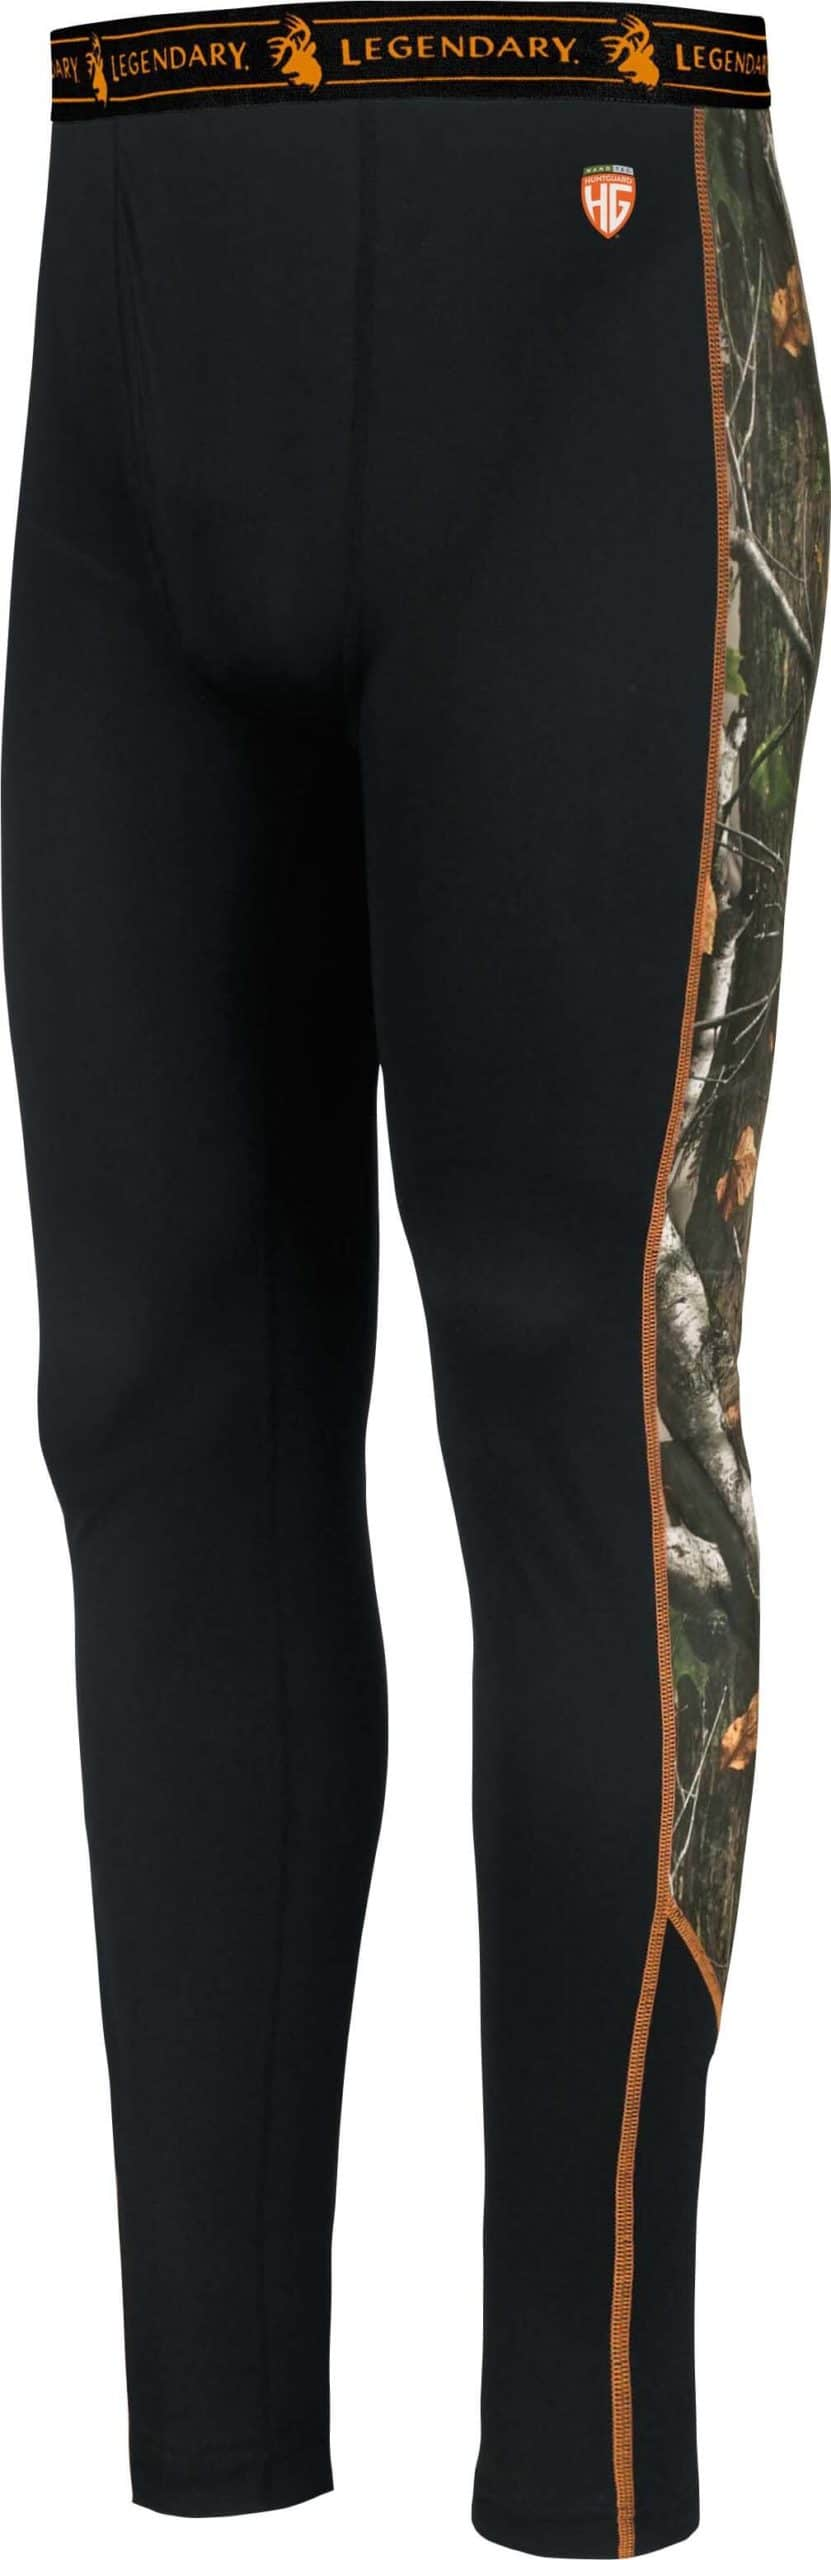 Mens HuntGuard Nanotec Base Layer Pants